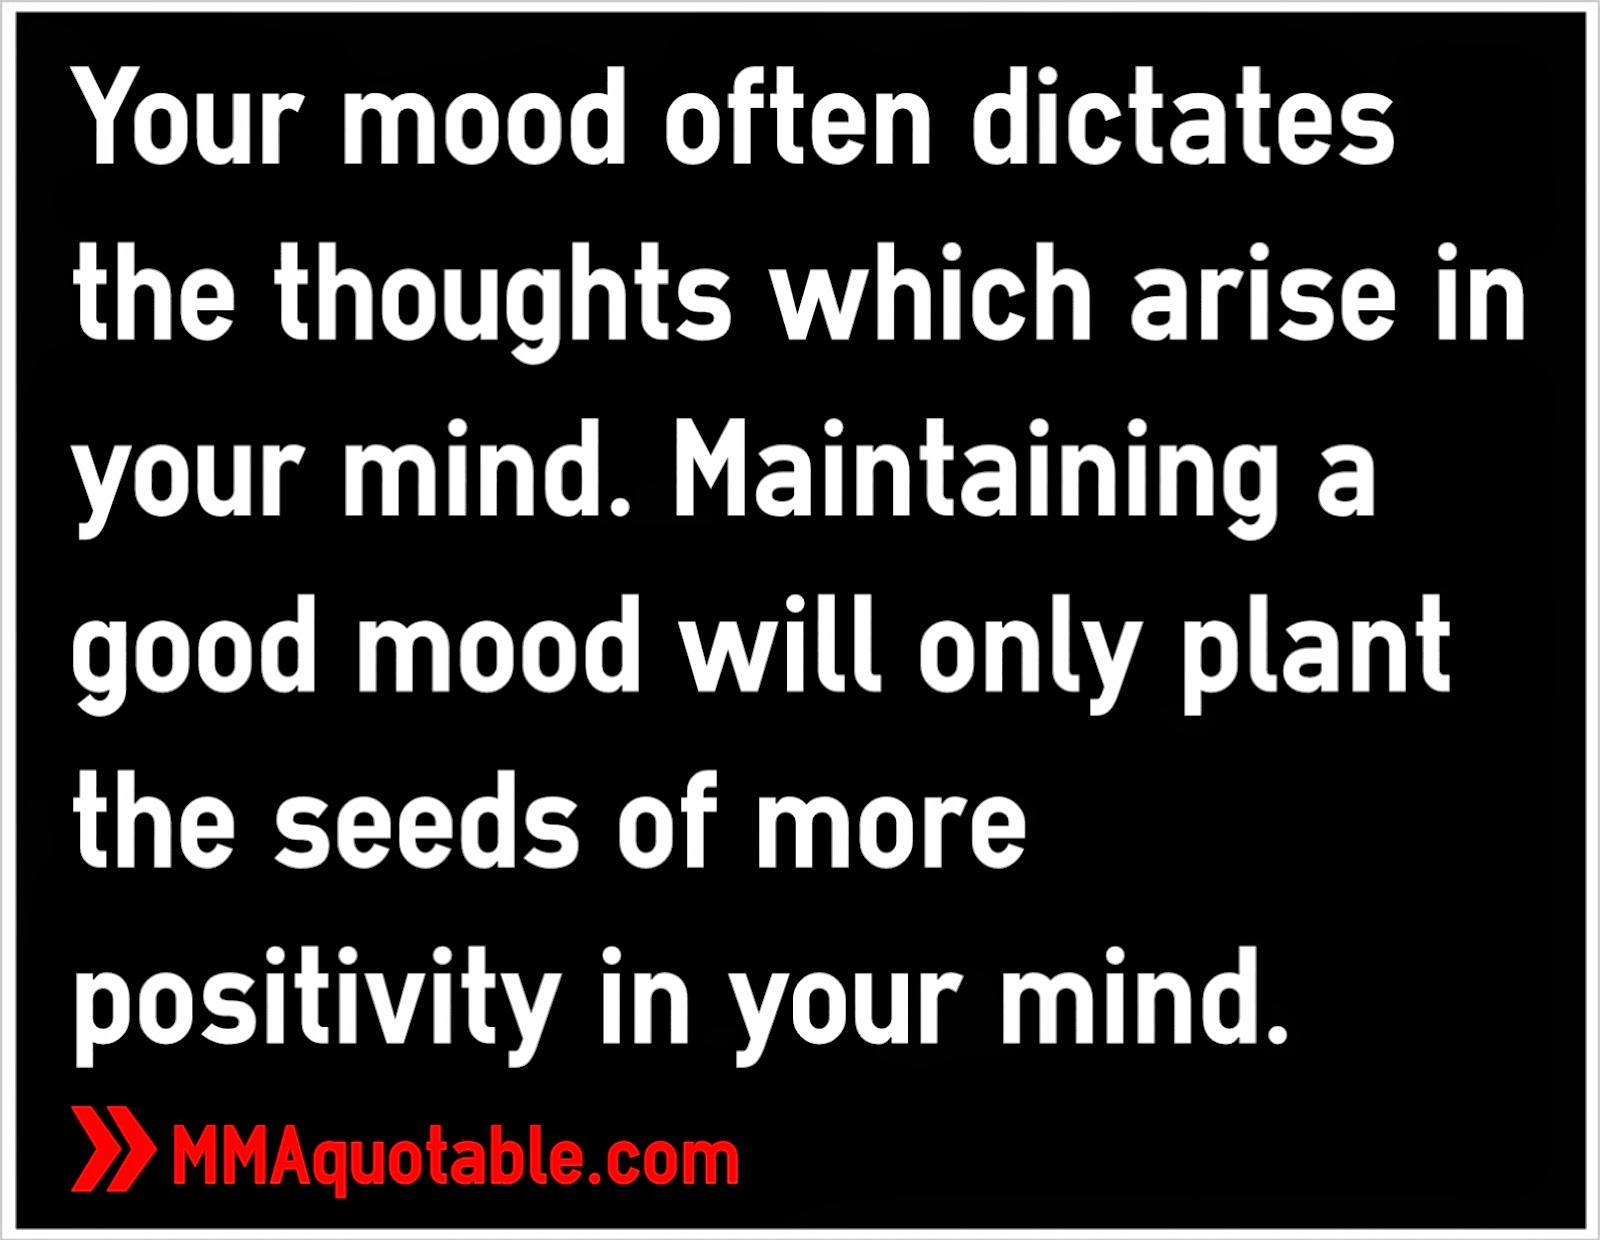 20 Wonderful Image Quotes That Will Boost Your Mood  Mood Quotes